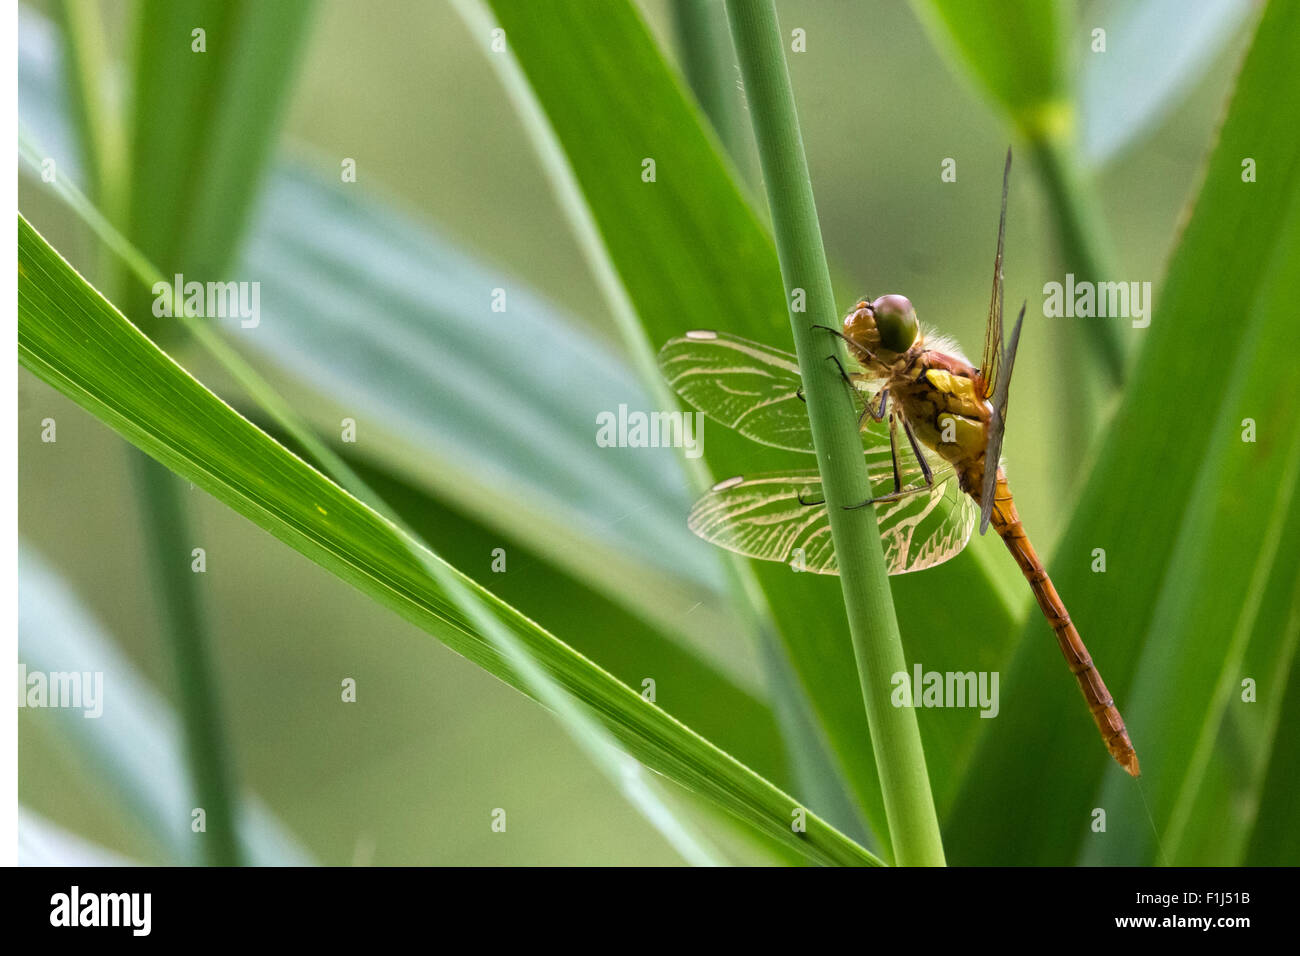 Common Darter reacting to perceived threat - Stock Image